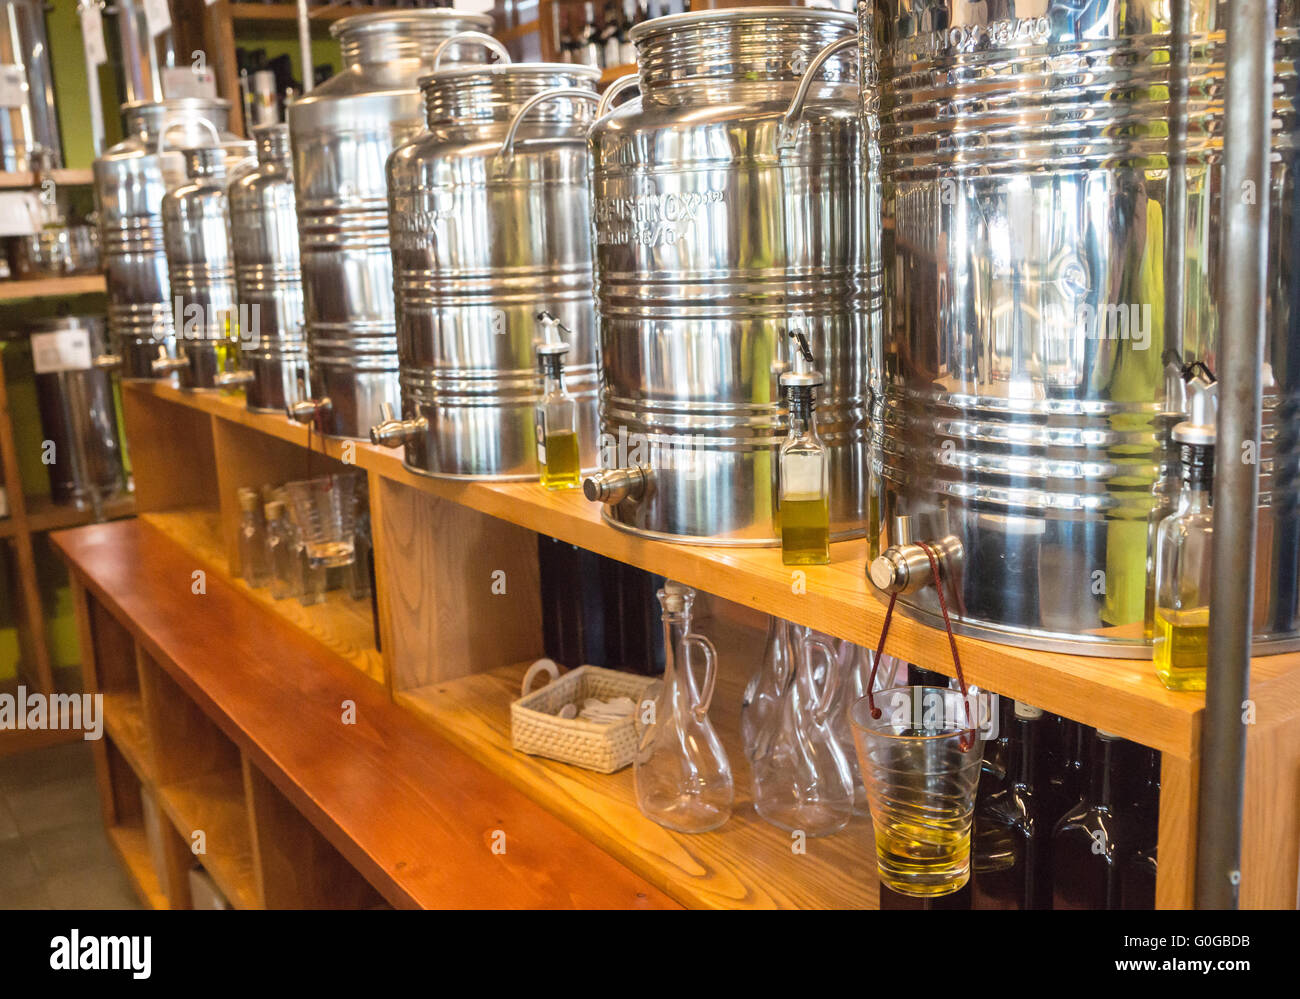 Olive Oil Containers - Stock Image